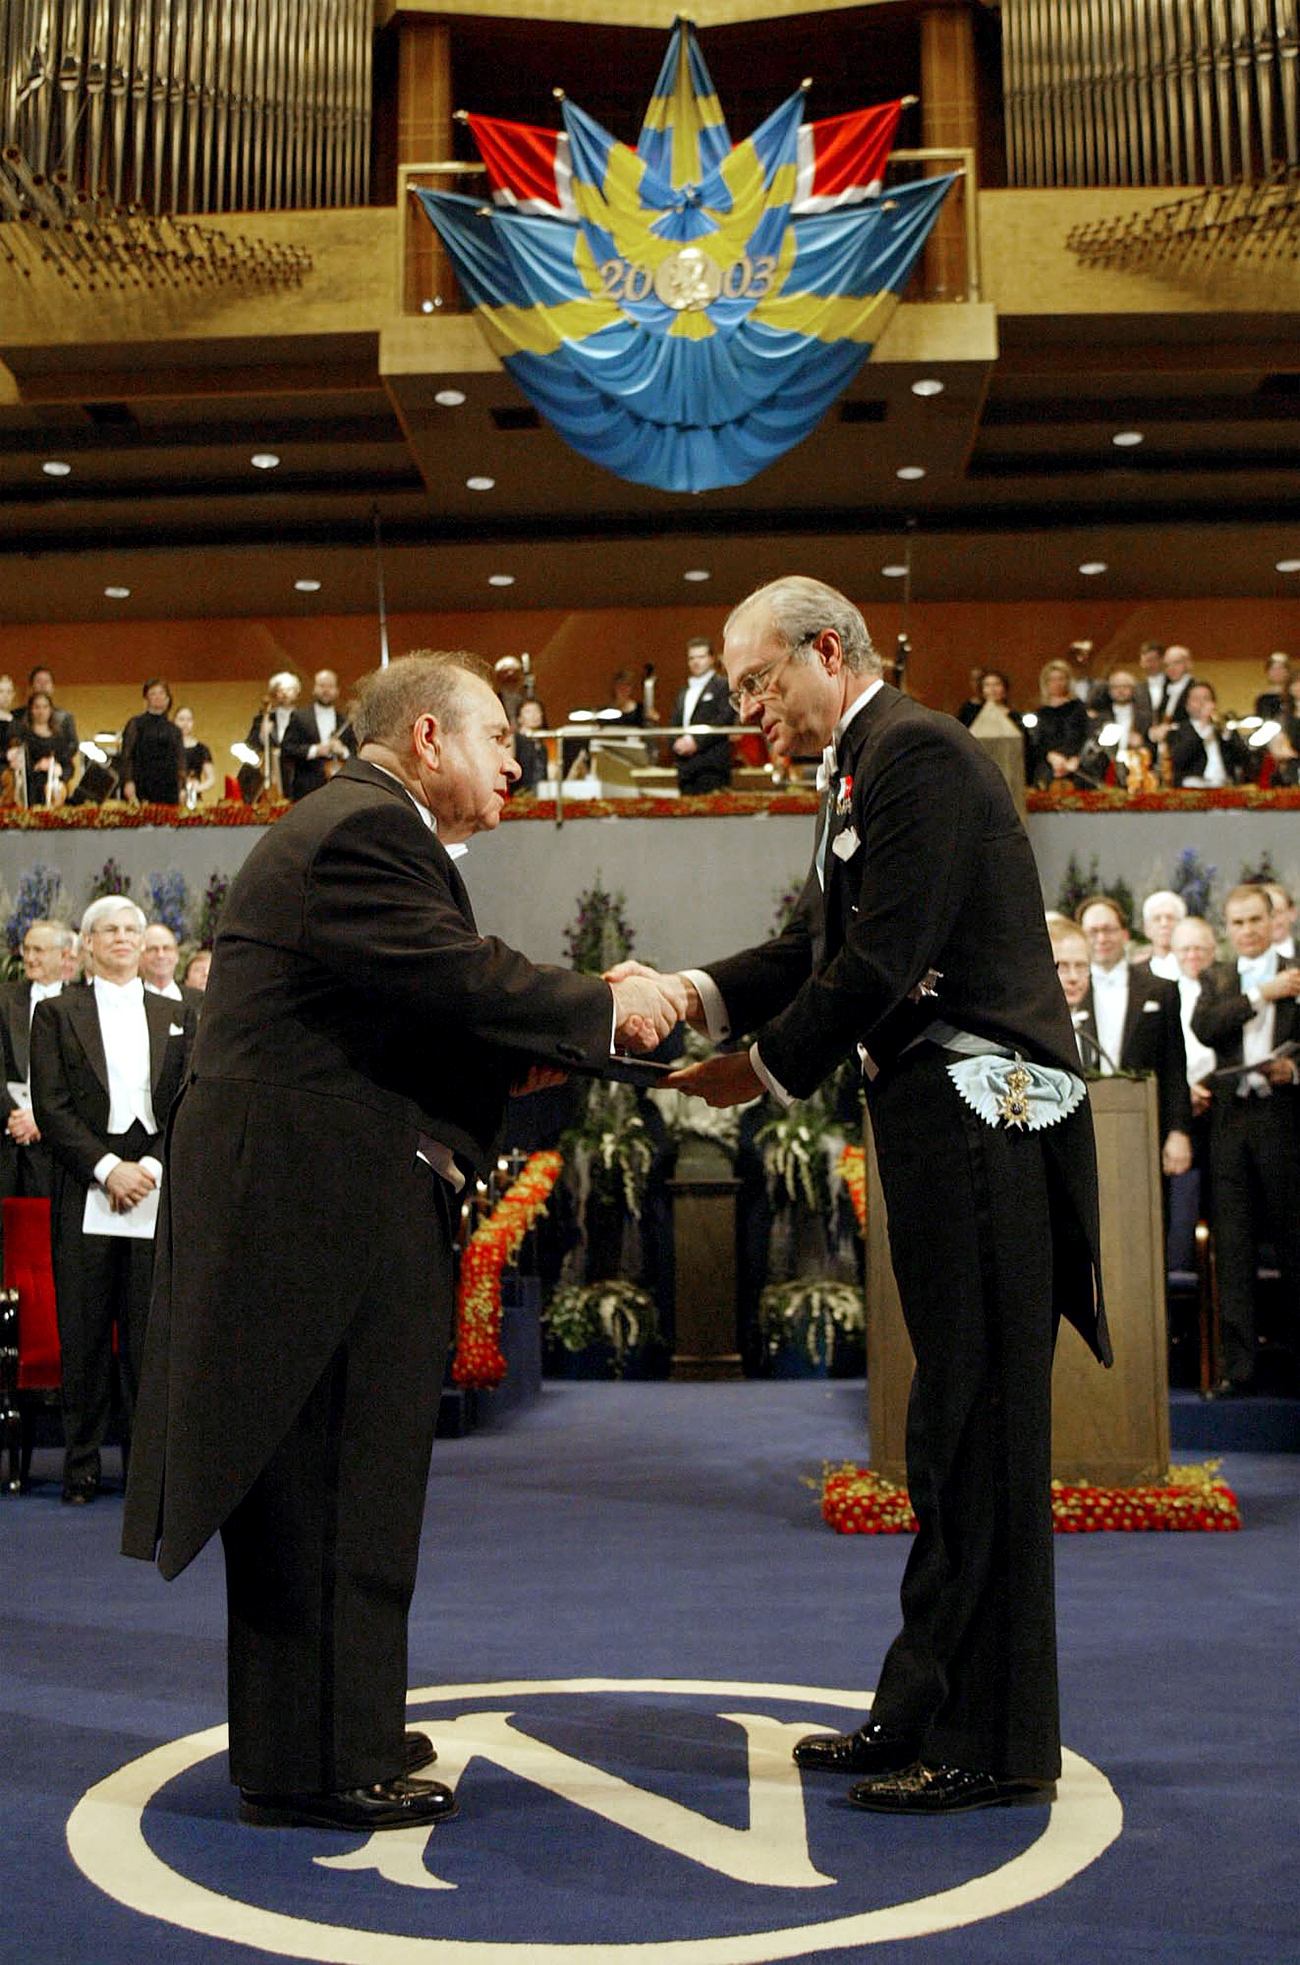 Alexey Abrikosov, left, receives the Nobel Prize in Physics from King Carl Gustaf of Sweden, right, during a ceremony at the Concert Hall in Stockholm, Dec. 10, 2003. / Photo: AP